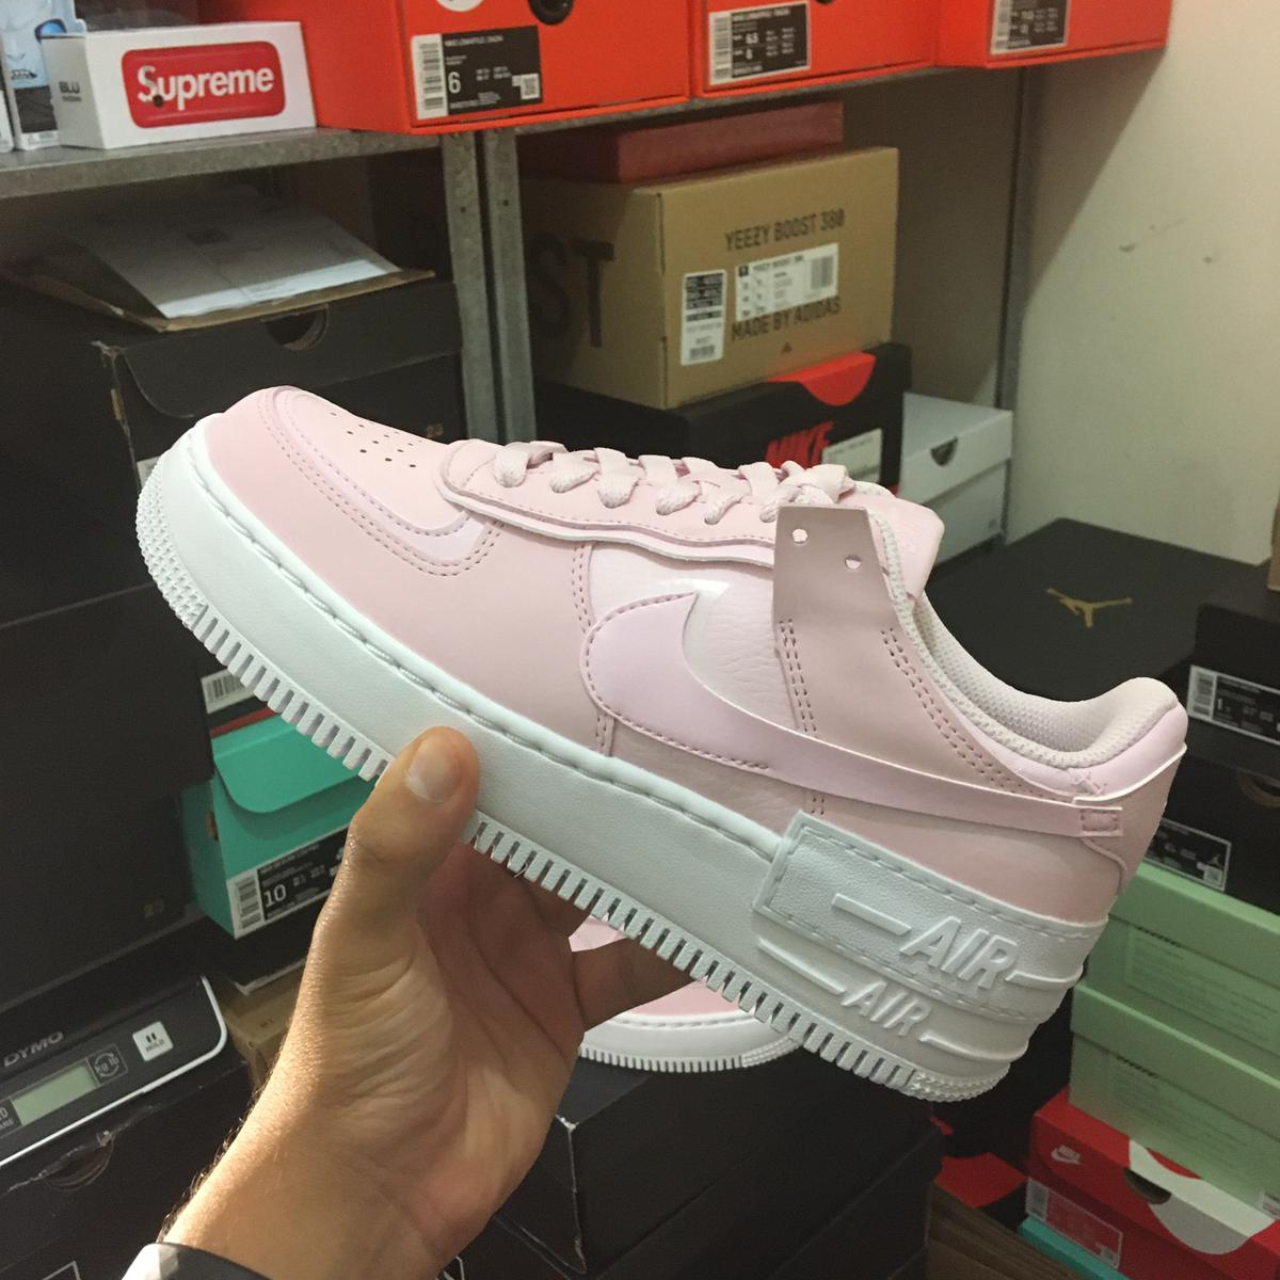 Nike Air Force 1 Shadow Pink Foam In Sizes 4uk 5uk Depop